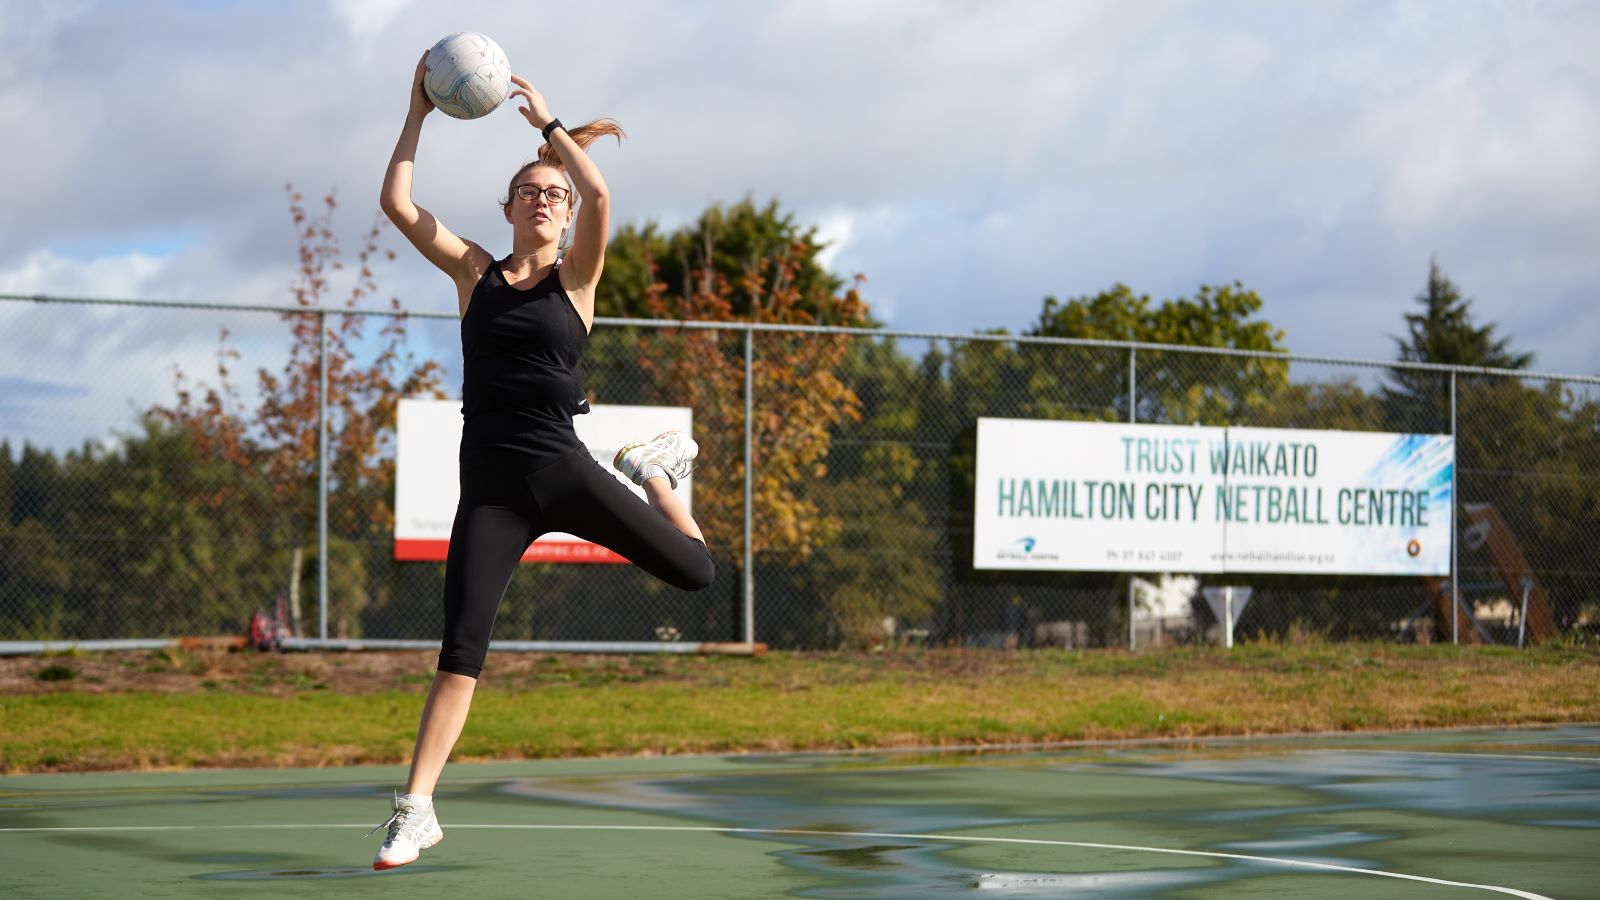 Scholarship puts sport career in reach for Anna